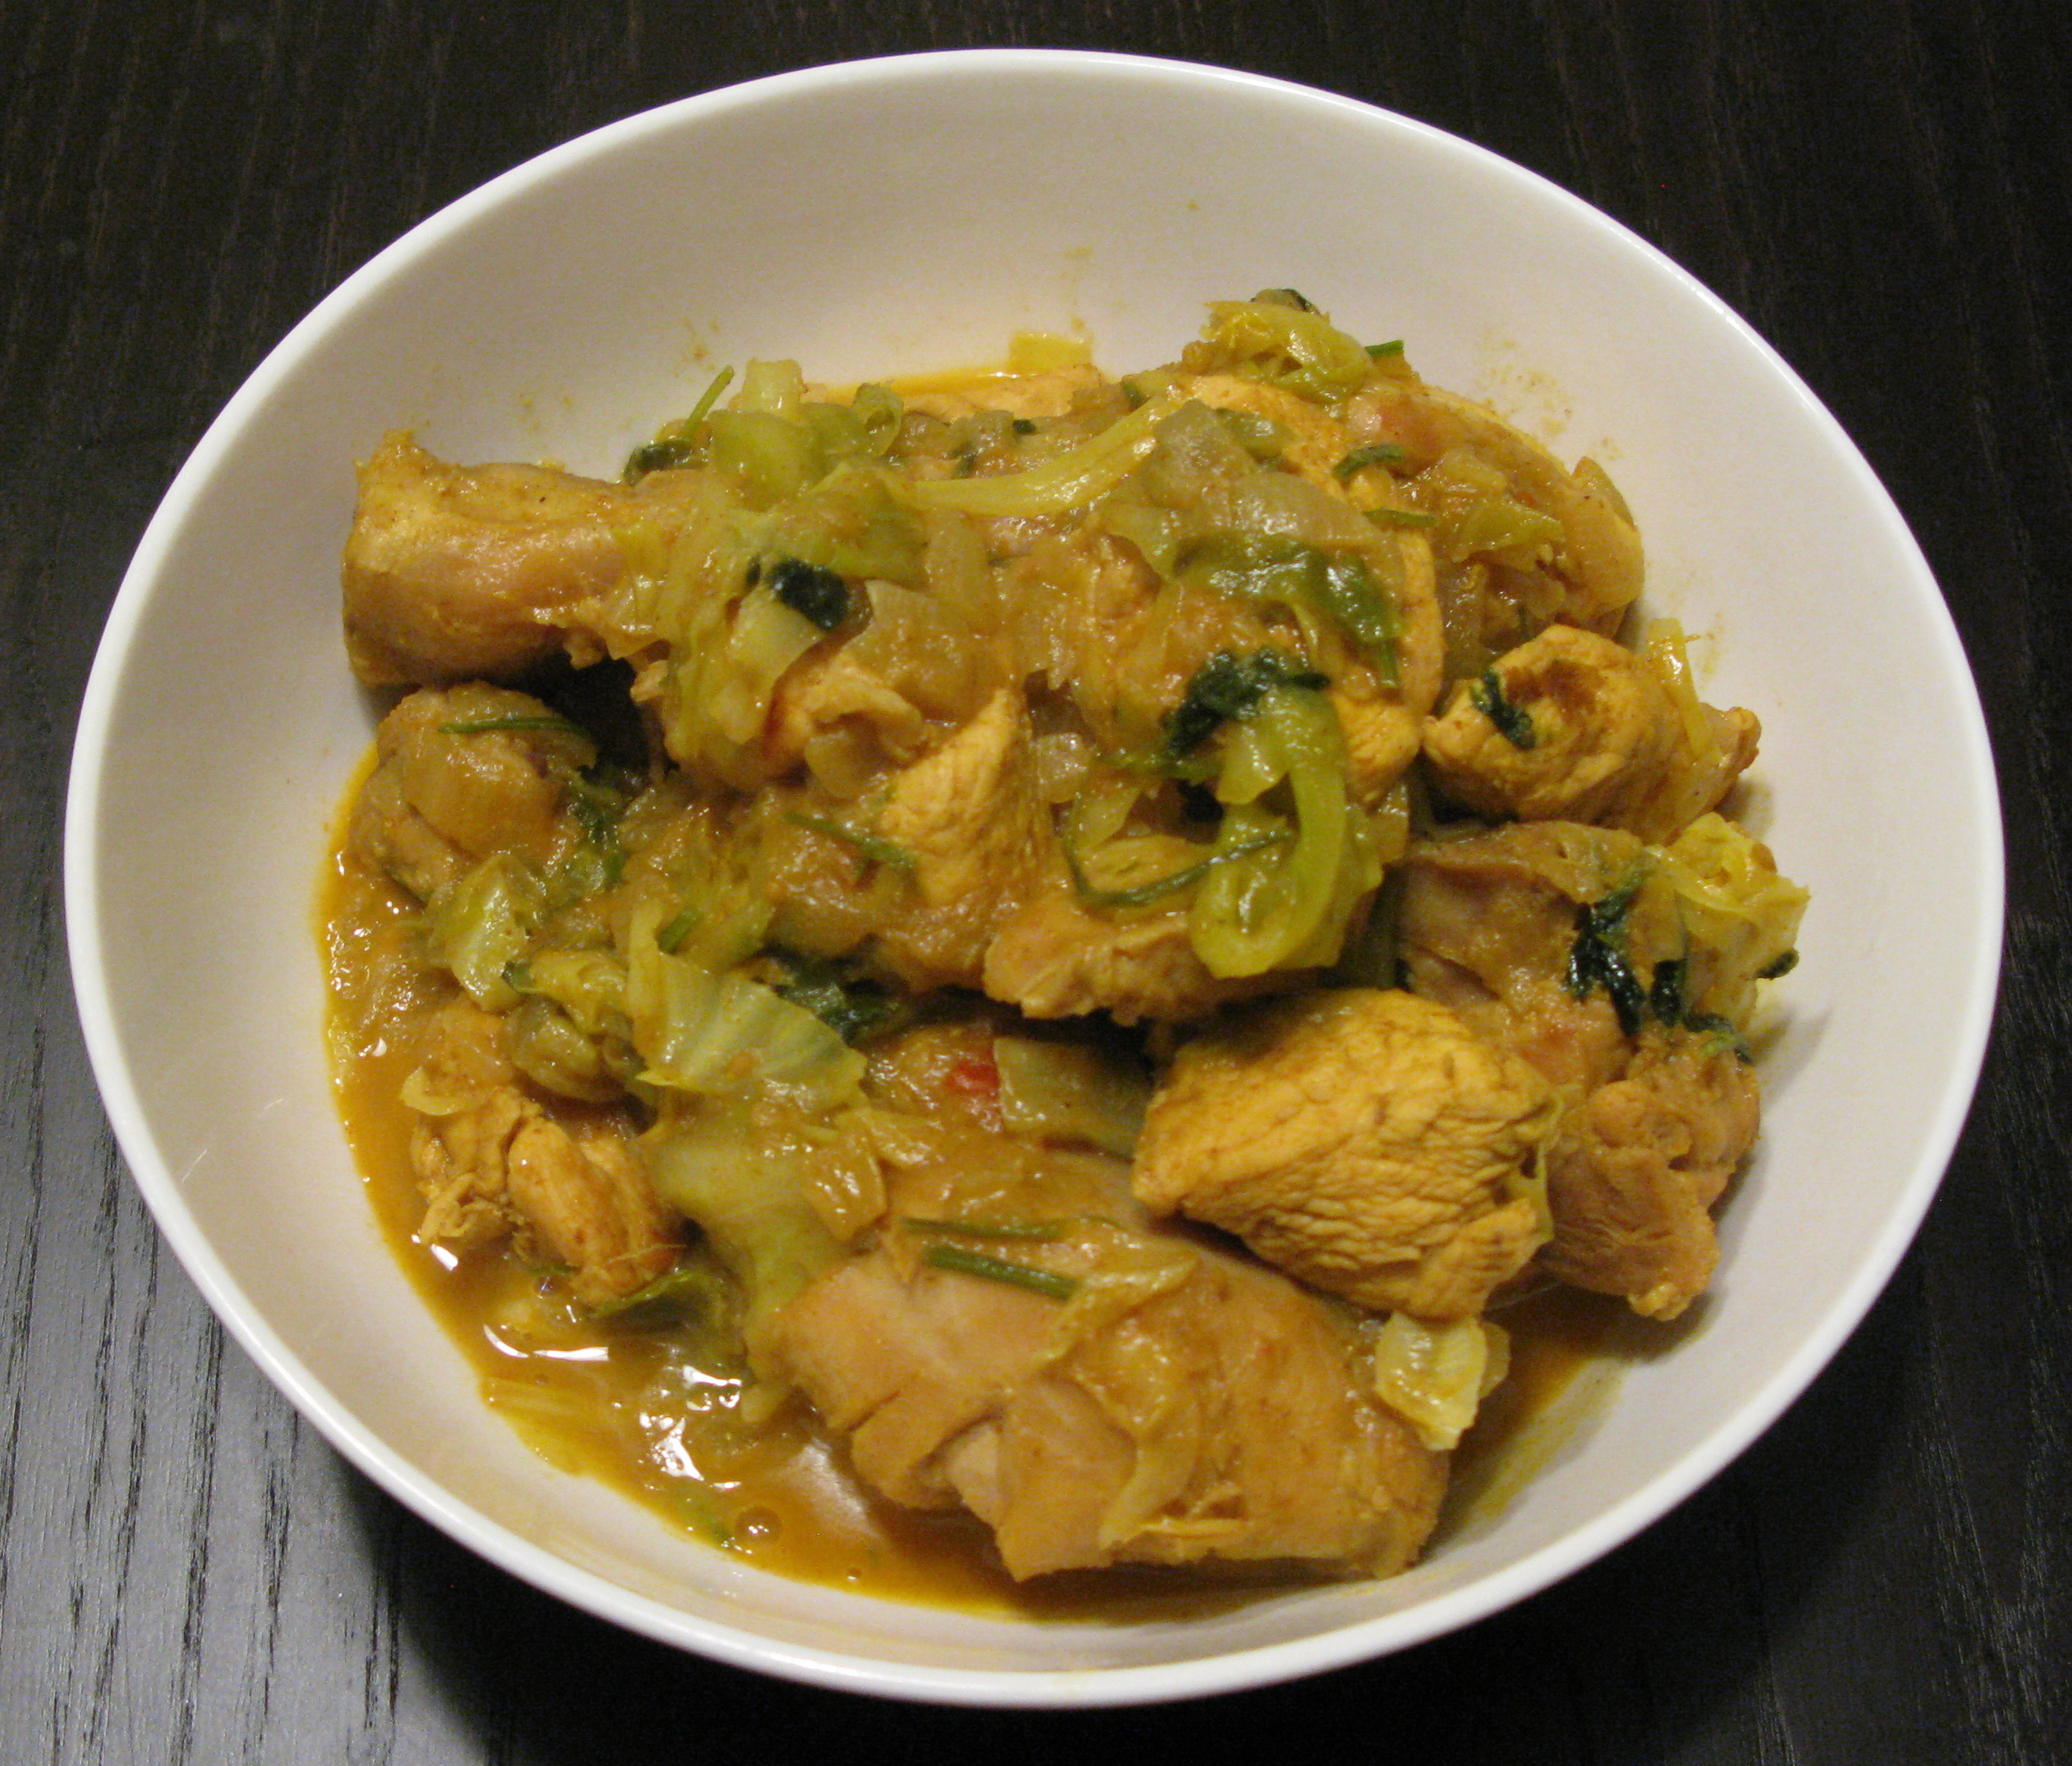 CHICKEN-CABBAGE CURRY